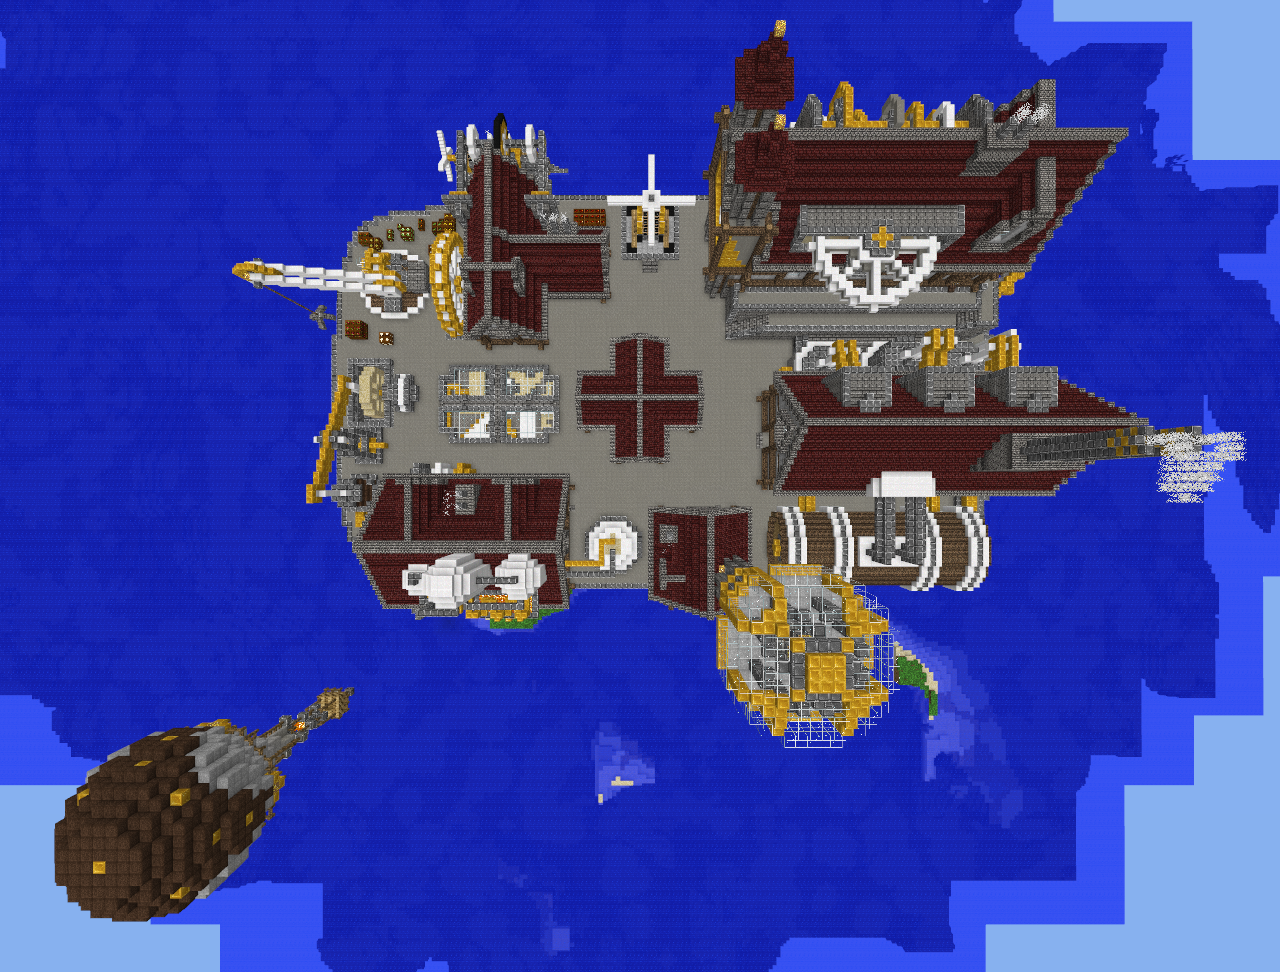 Minecraft - Steampunk City 7 by Virenth on DeviantArt